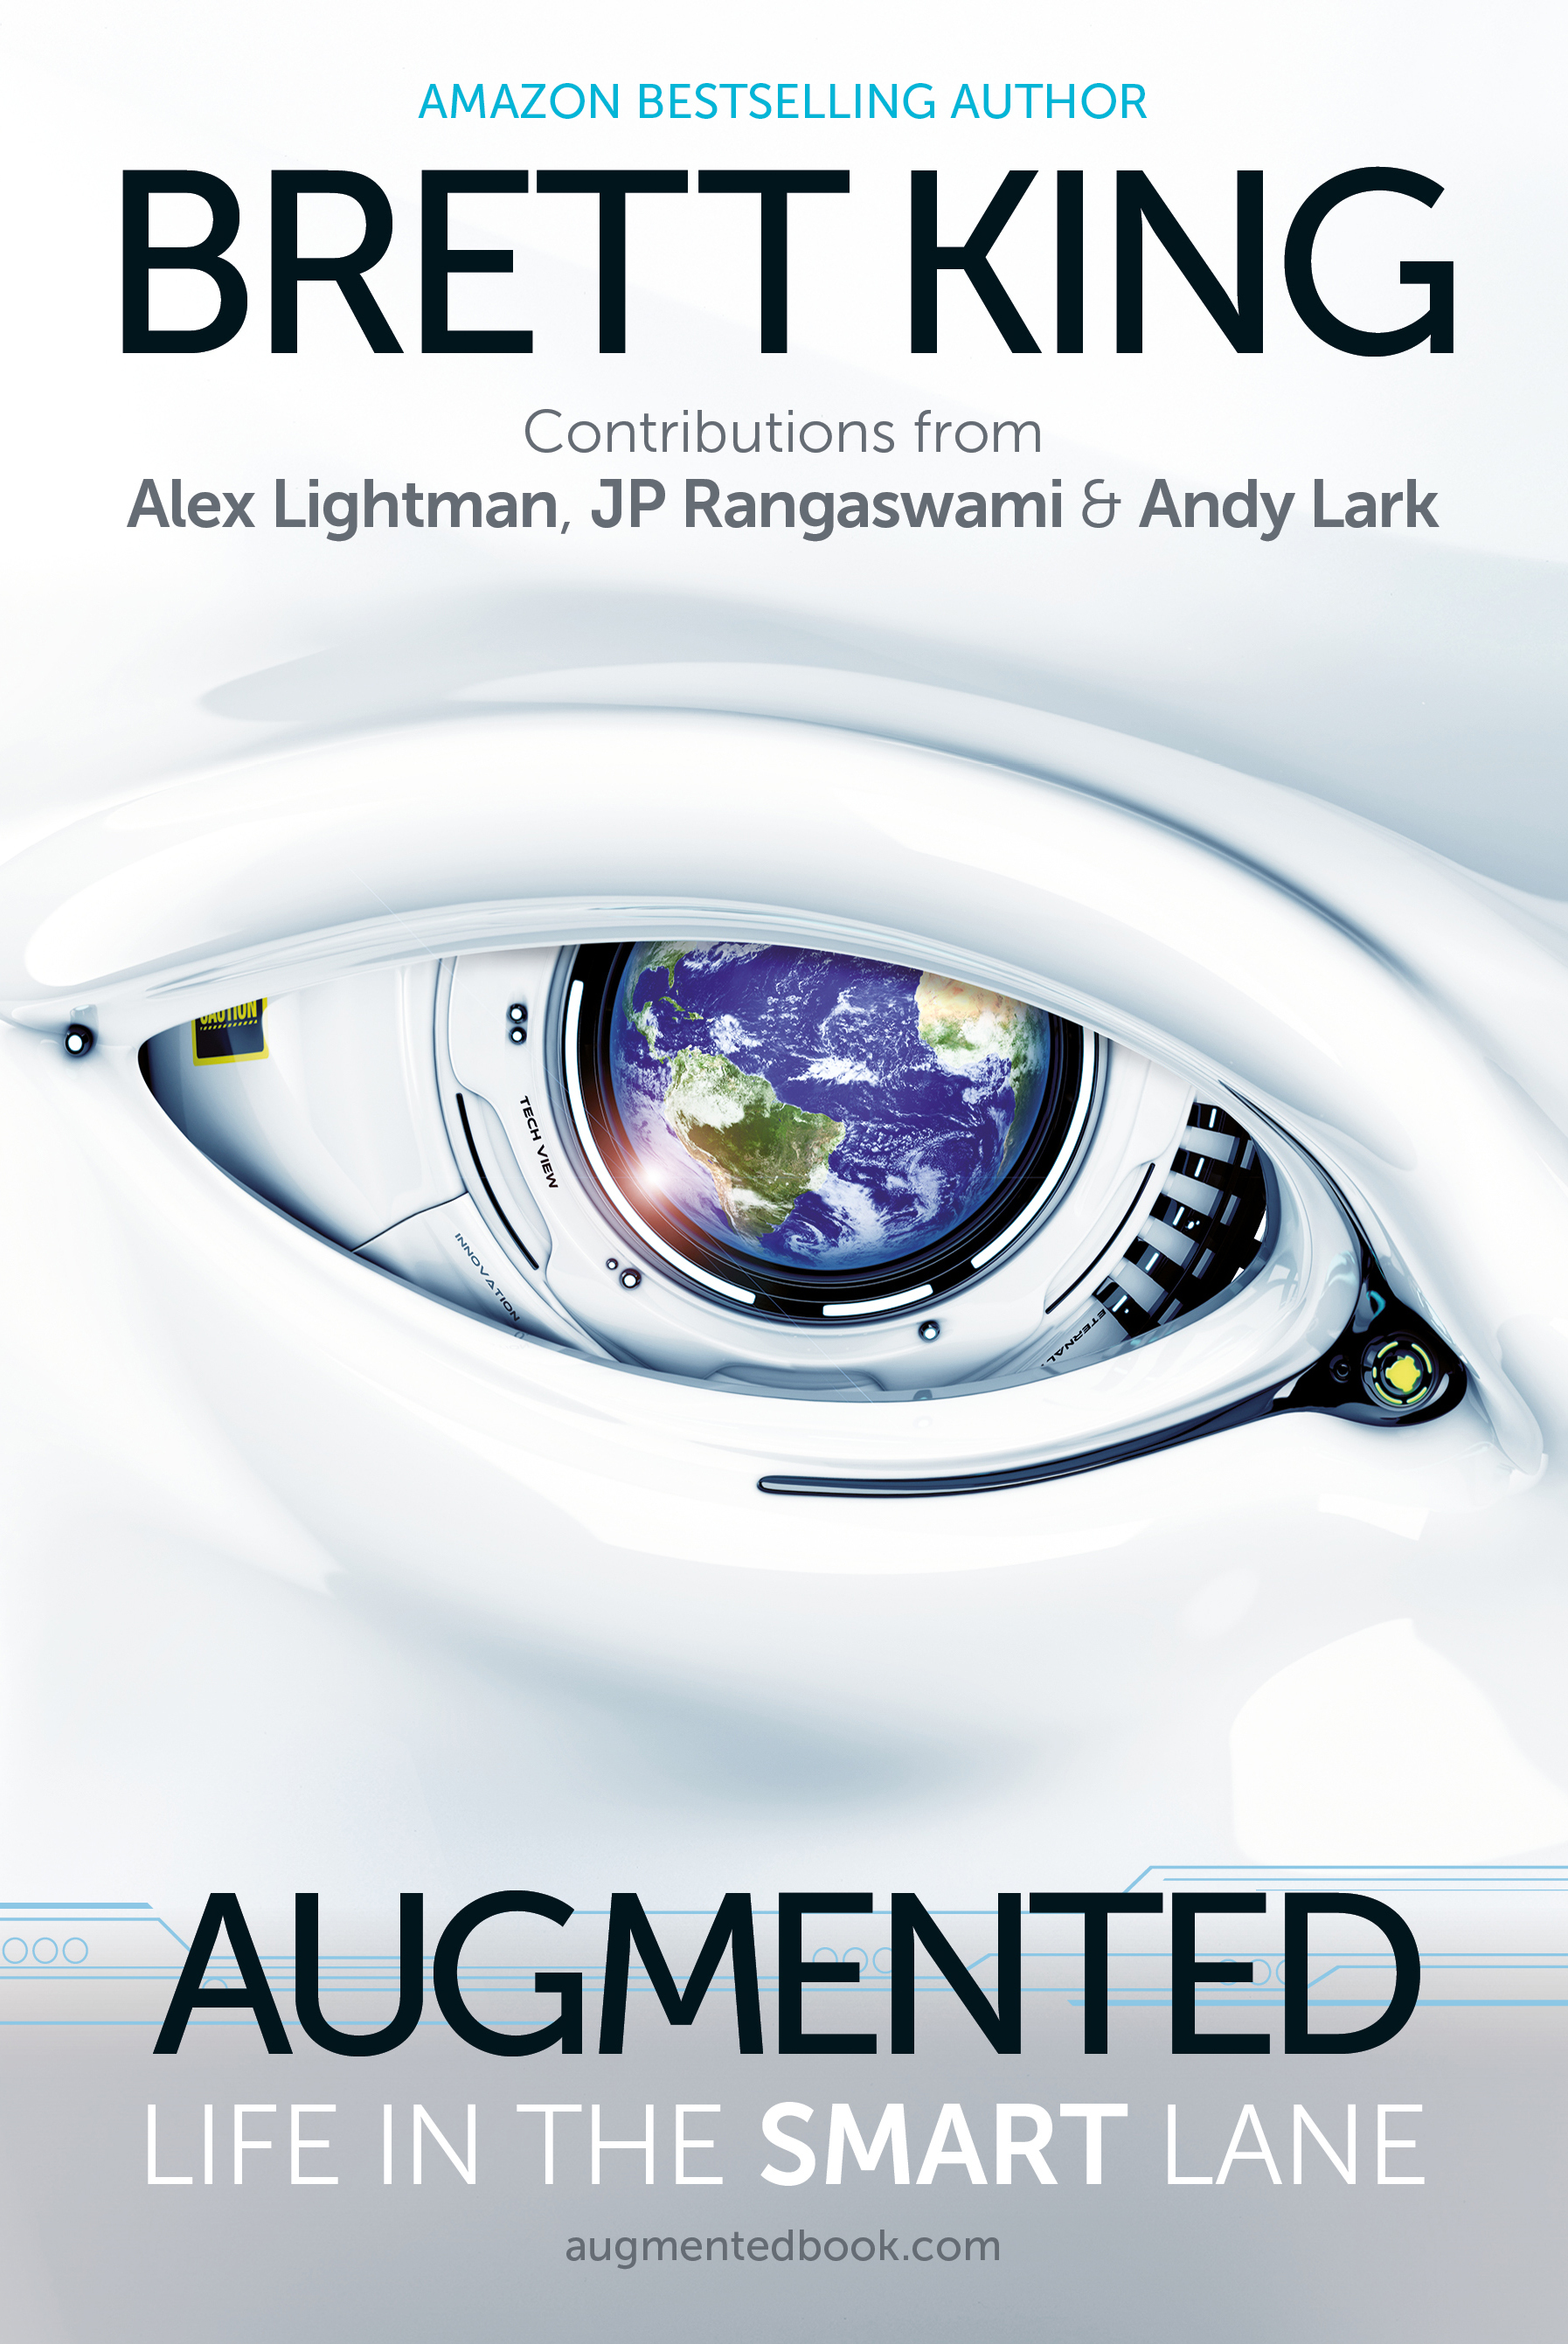 Augmented- Life in the Smart lane